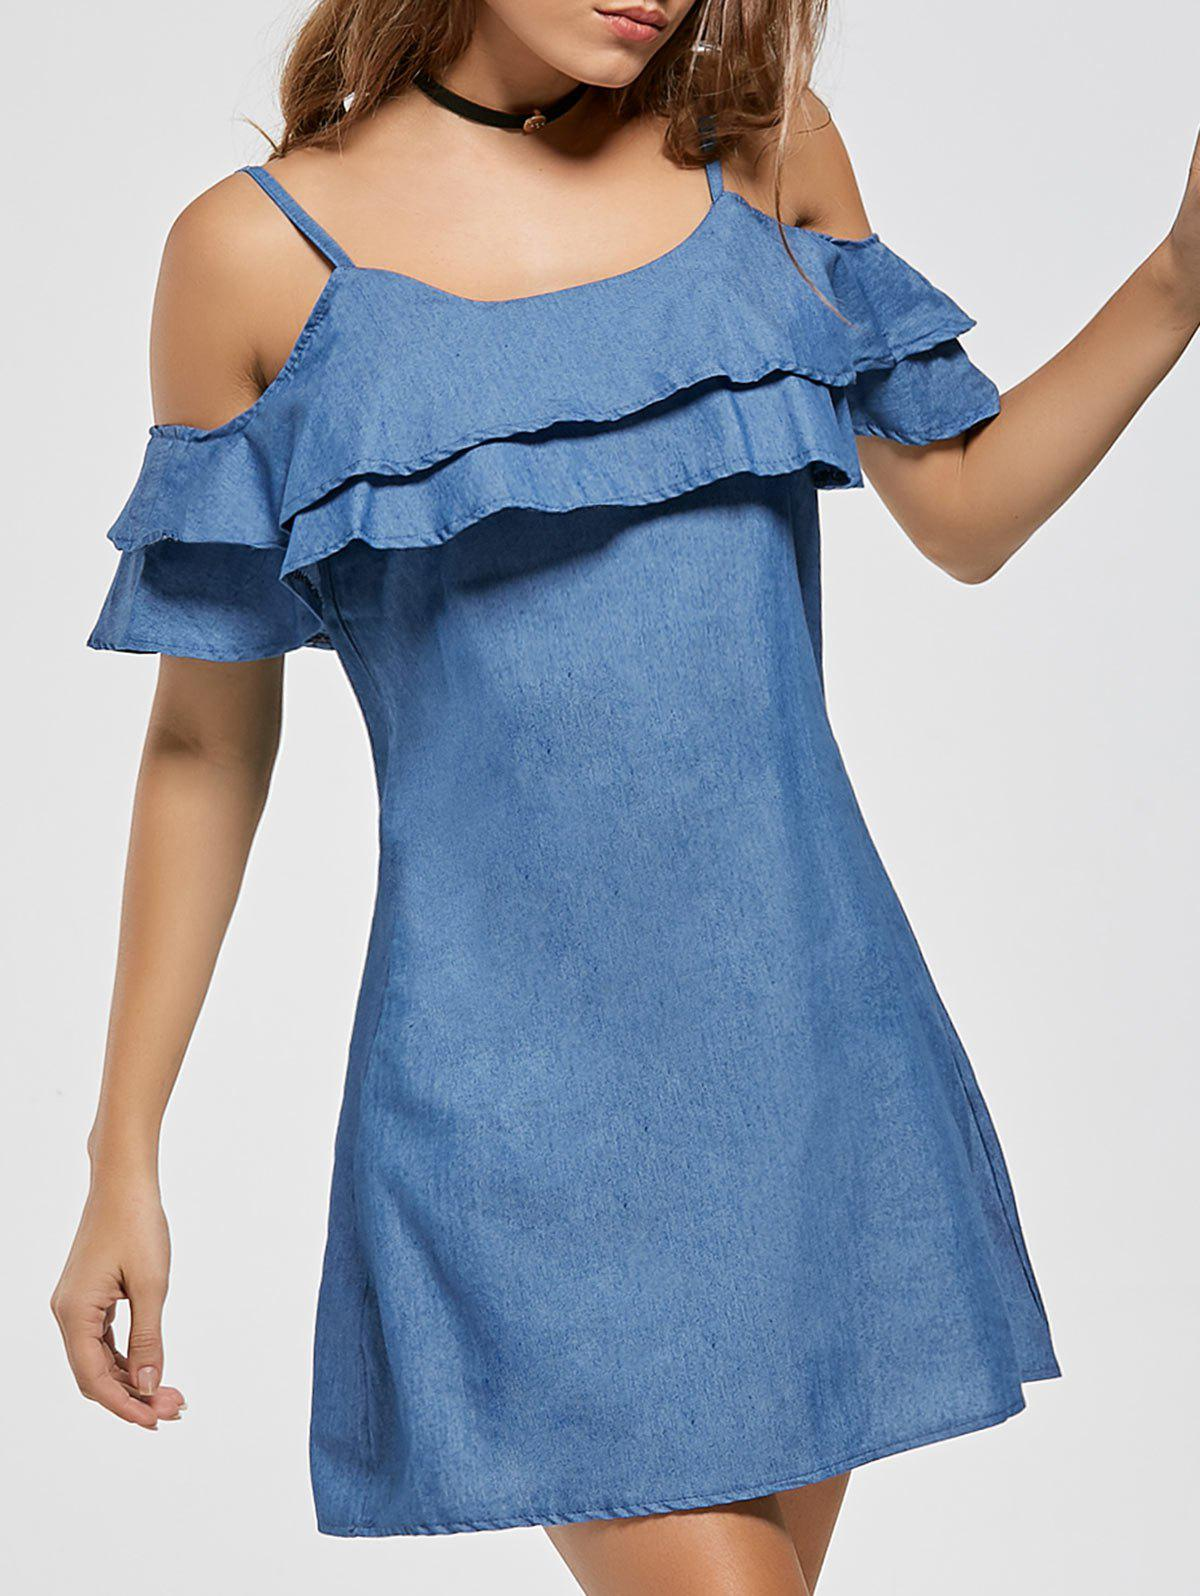 Ruffle Spaghetti Strap Cold Shoulder Mini DressWOMEN<br><br>Size: L; Color: BLUE; Style: Cute; Material: Polyester; Silhouette: Shift; Dresses Length: Mini; Neckline: Spaghetti Strap; Sleeve Length: Short Sleeves; Pattern Type: Solid Color; With Belt: No; Season: Summer; Weight: 0.2200kg; Package Contents: 1 x Dress; Occasion: Casual;